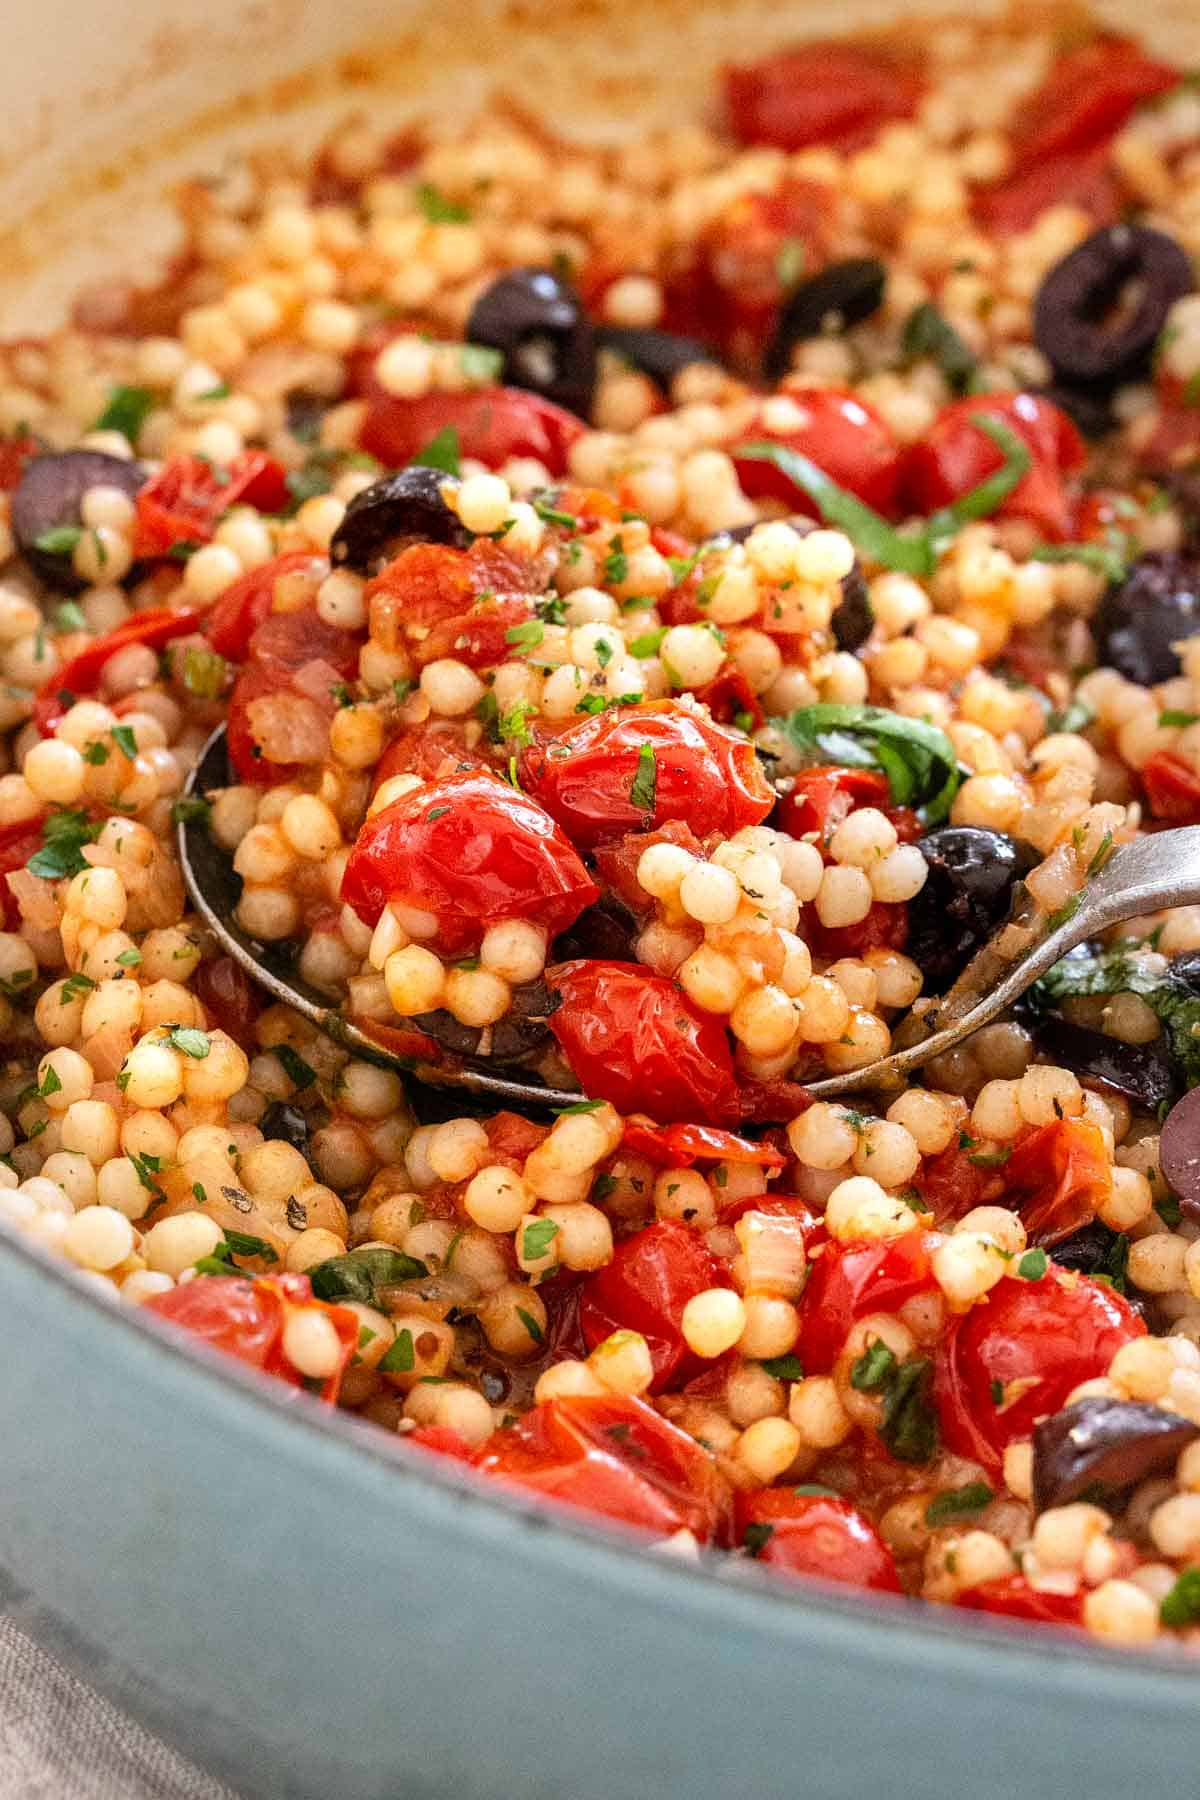 Israeli Couscous with Tomato and Olives